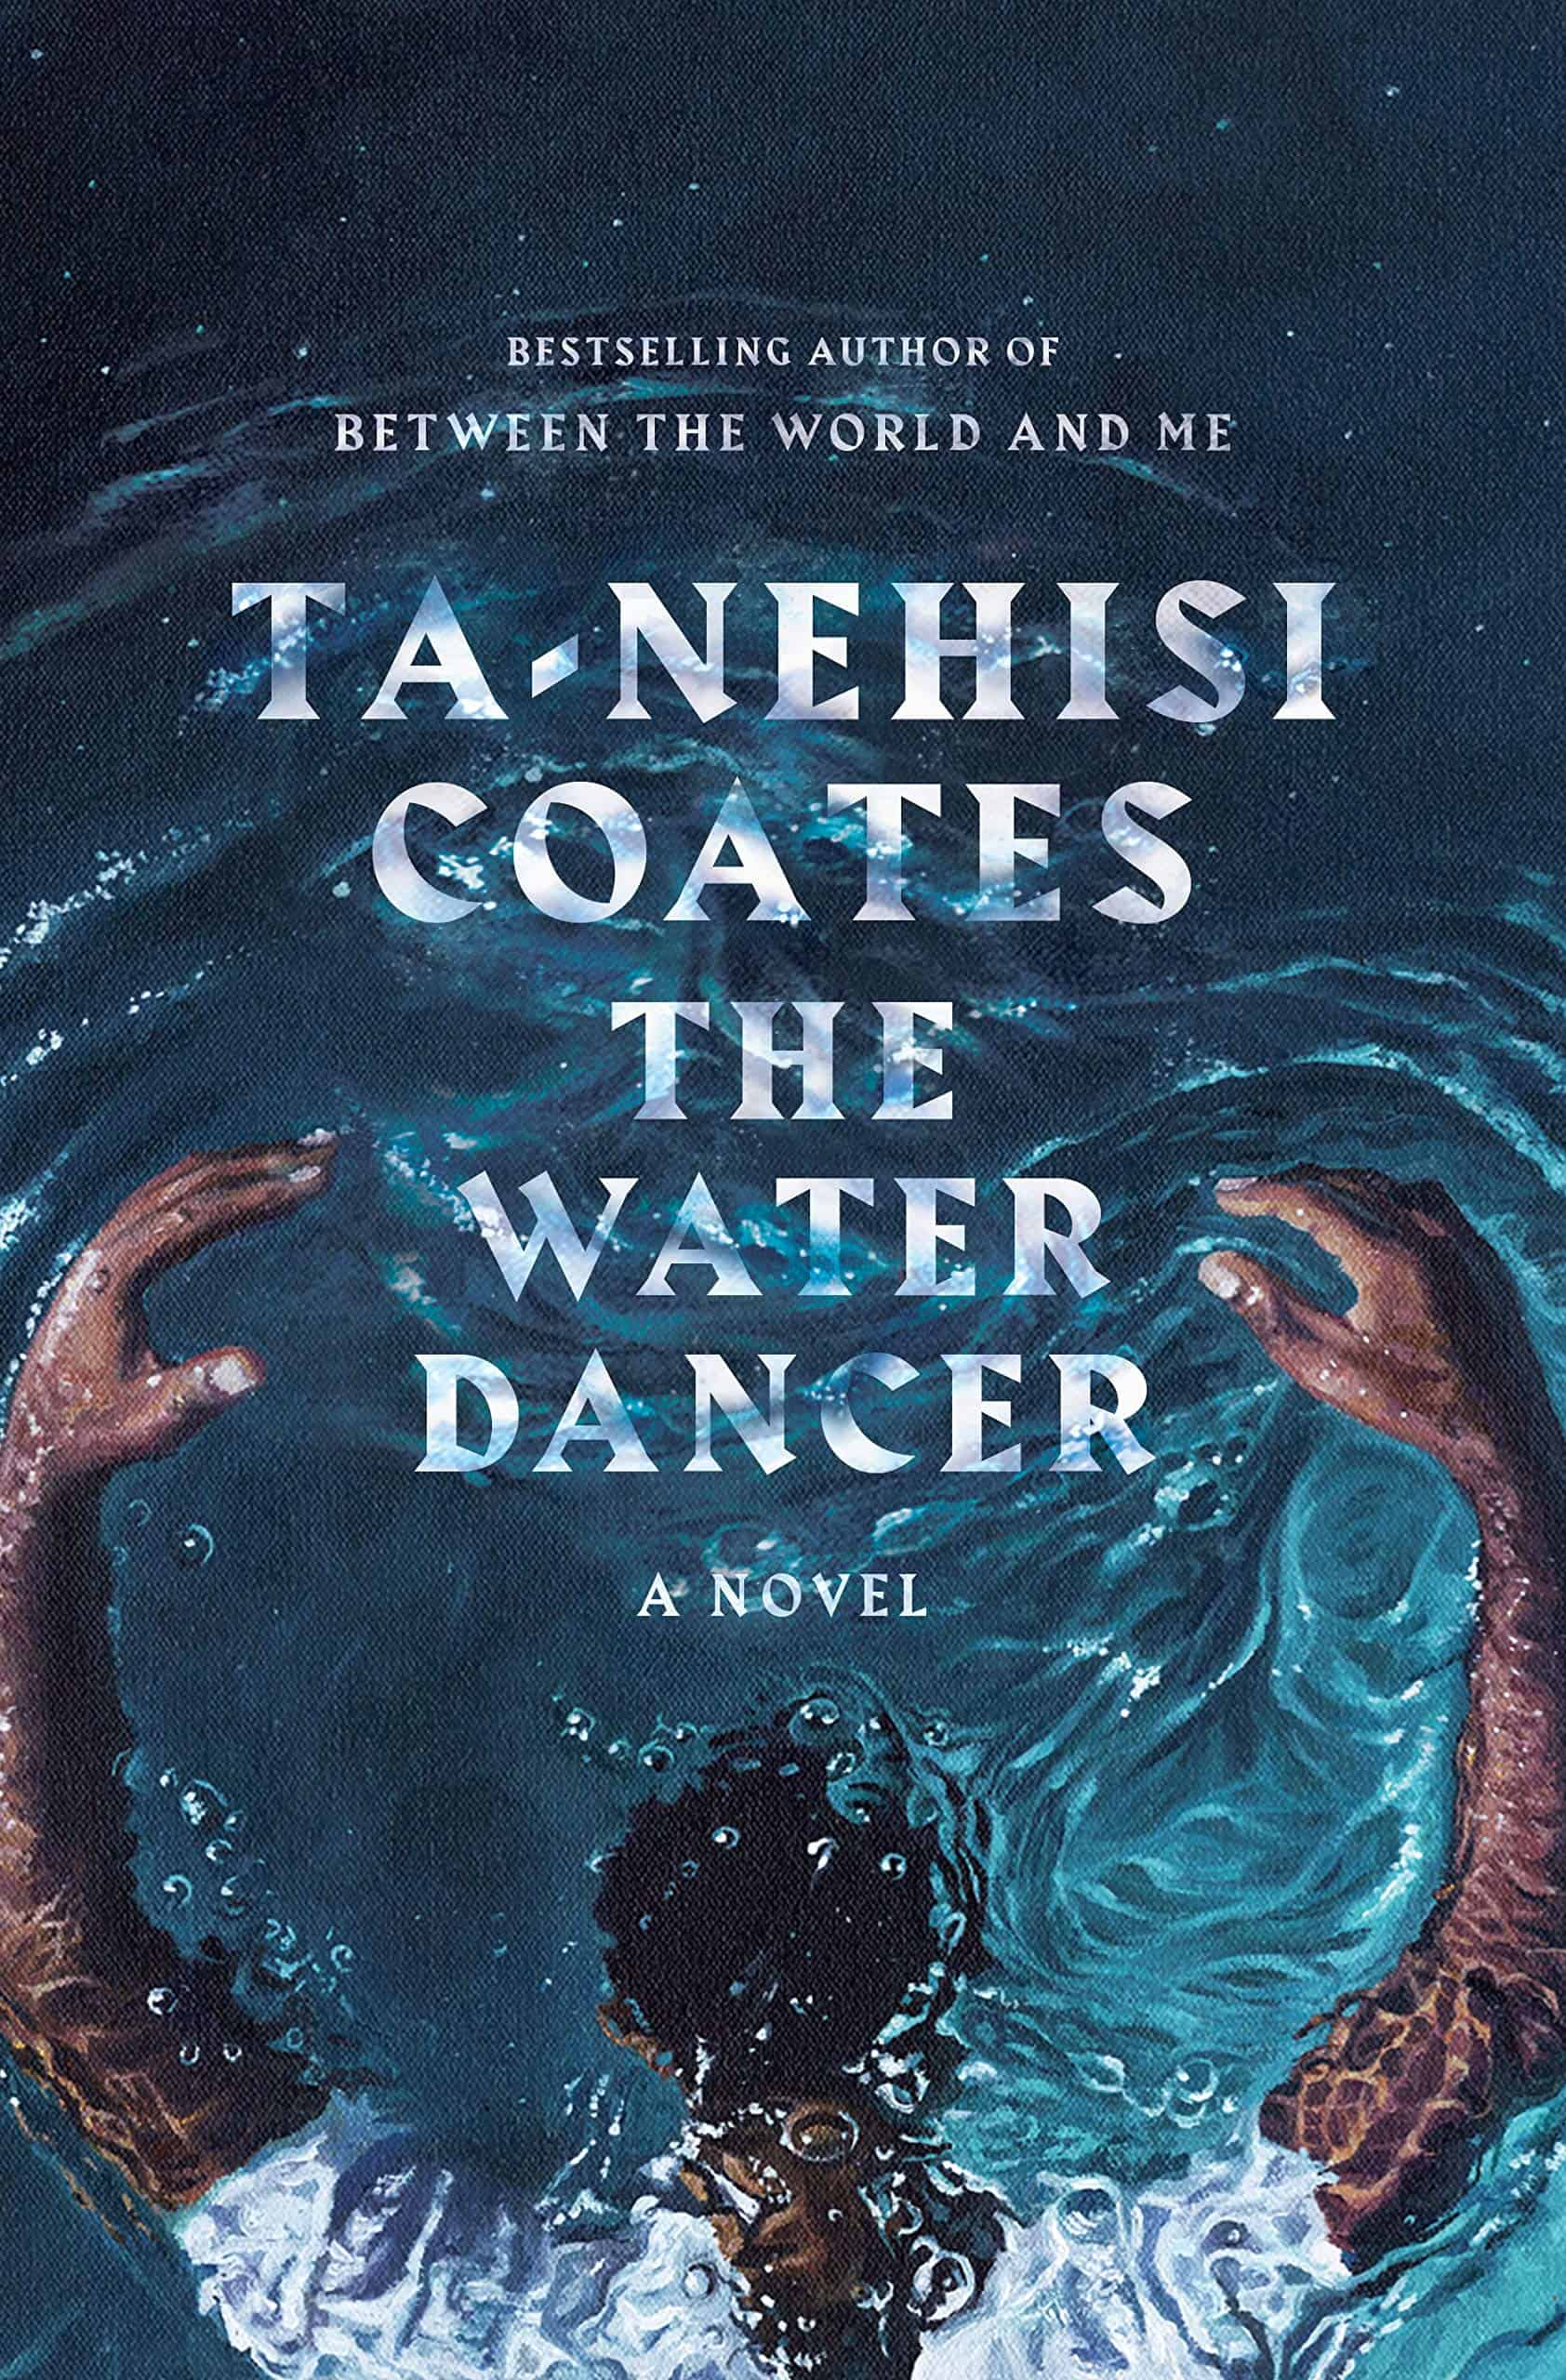 The Water Dancer by Ta-Nehisi Coates Standalone Sci-Fi and Fantasy Novels